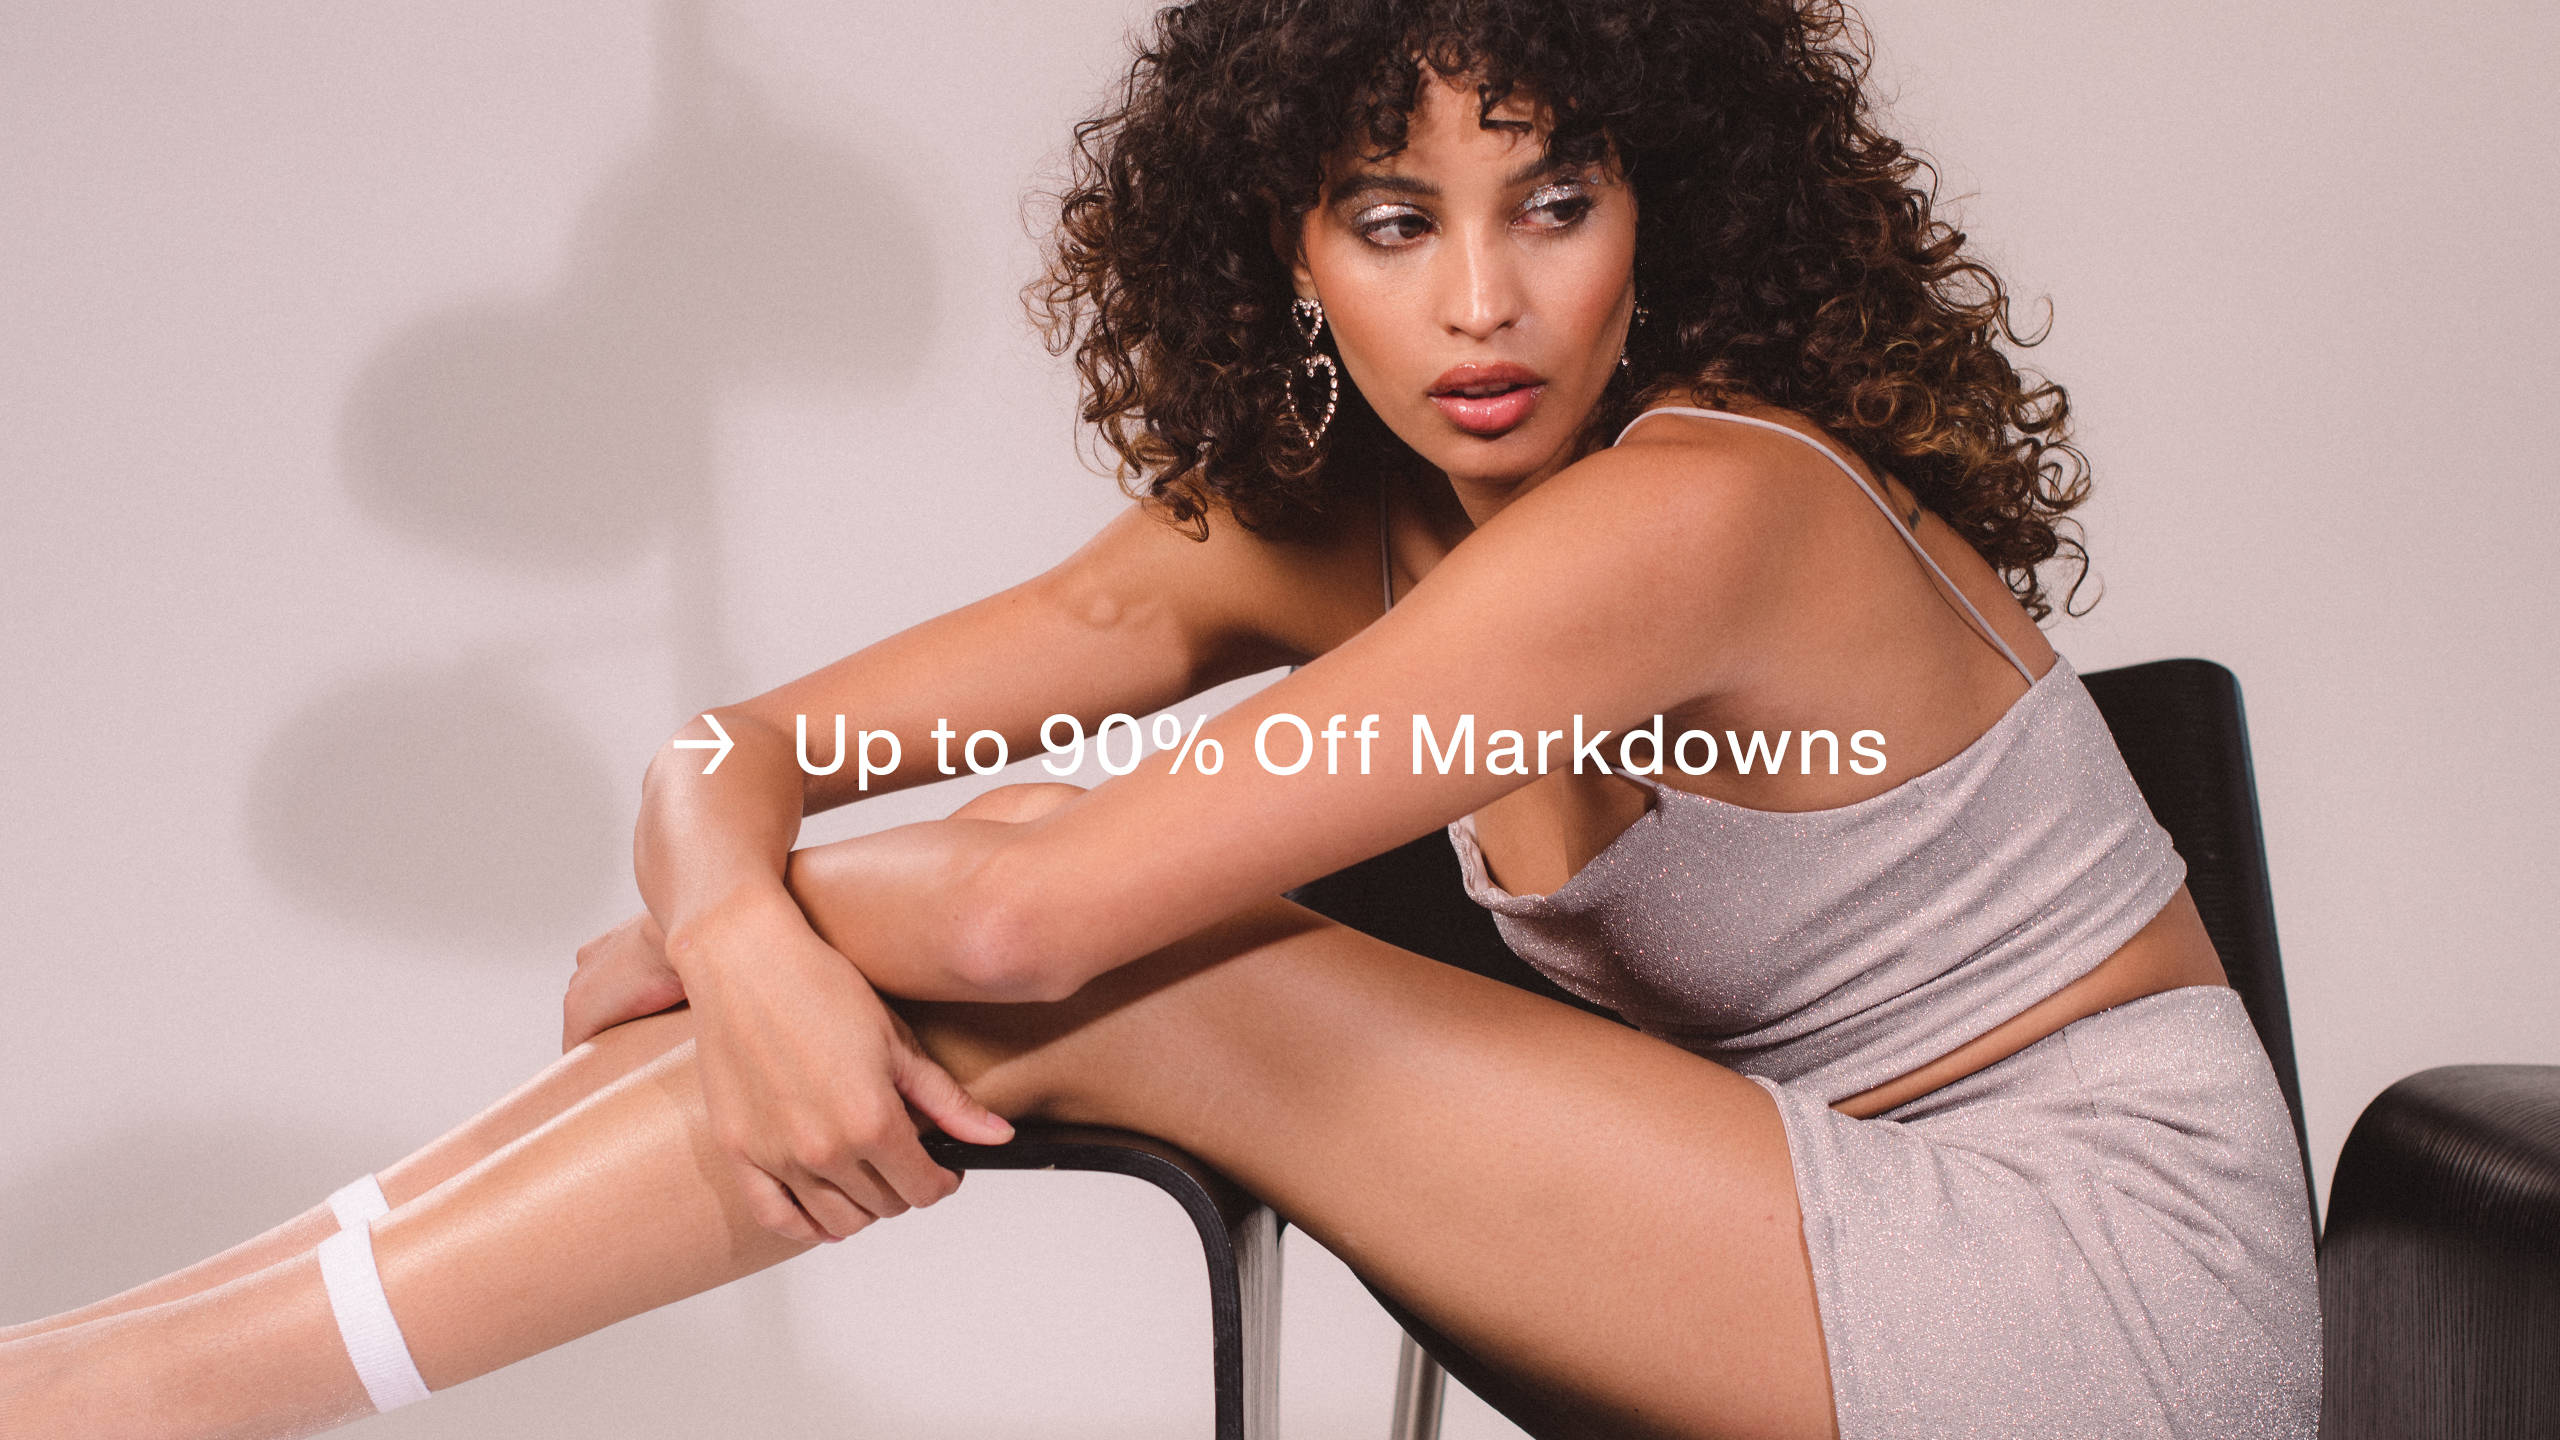 Up to 90% Off Markdowns